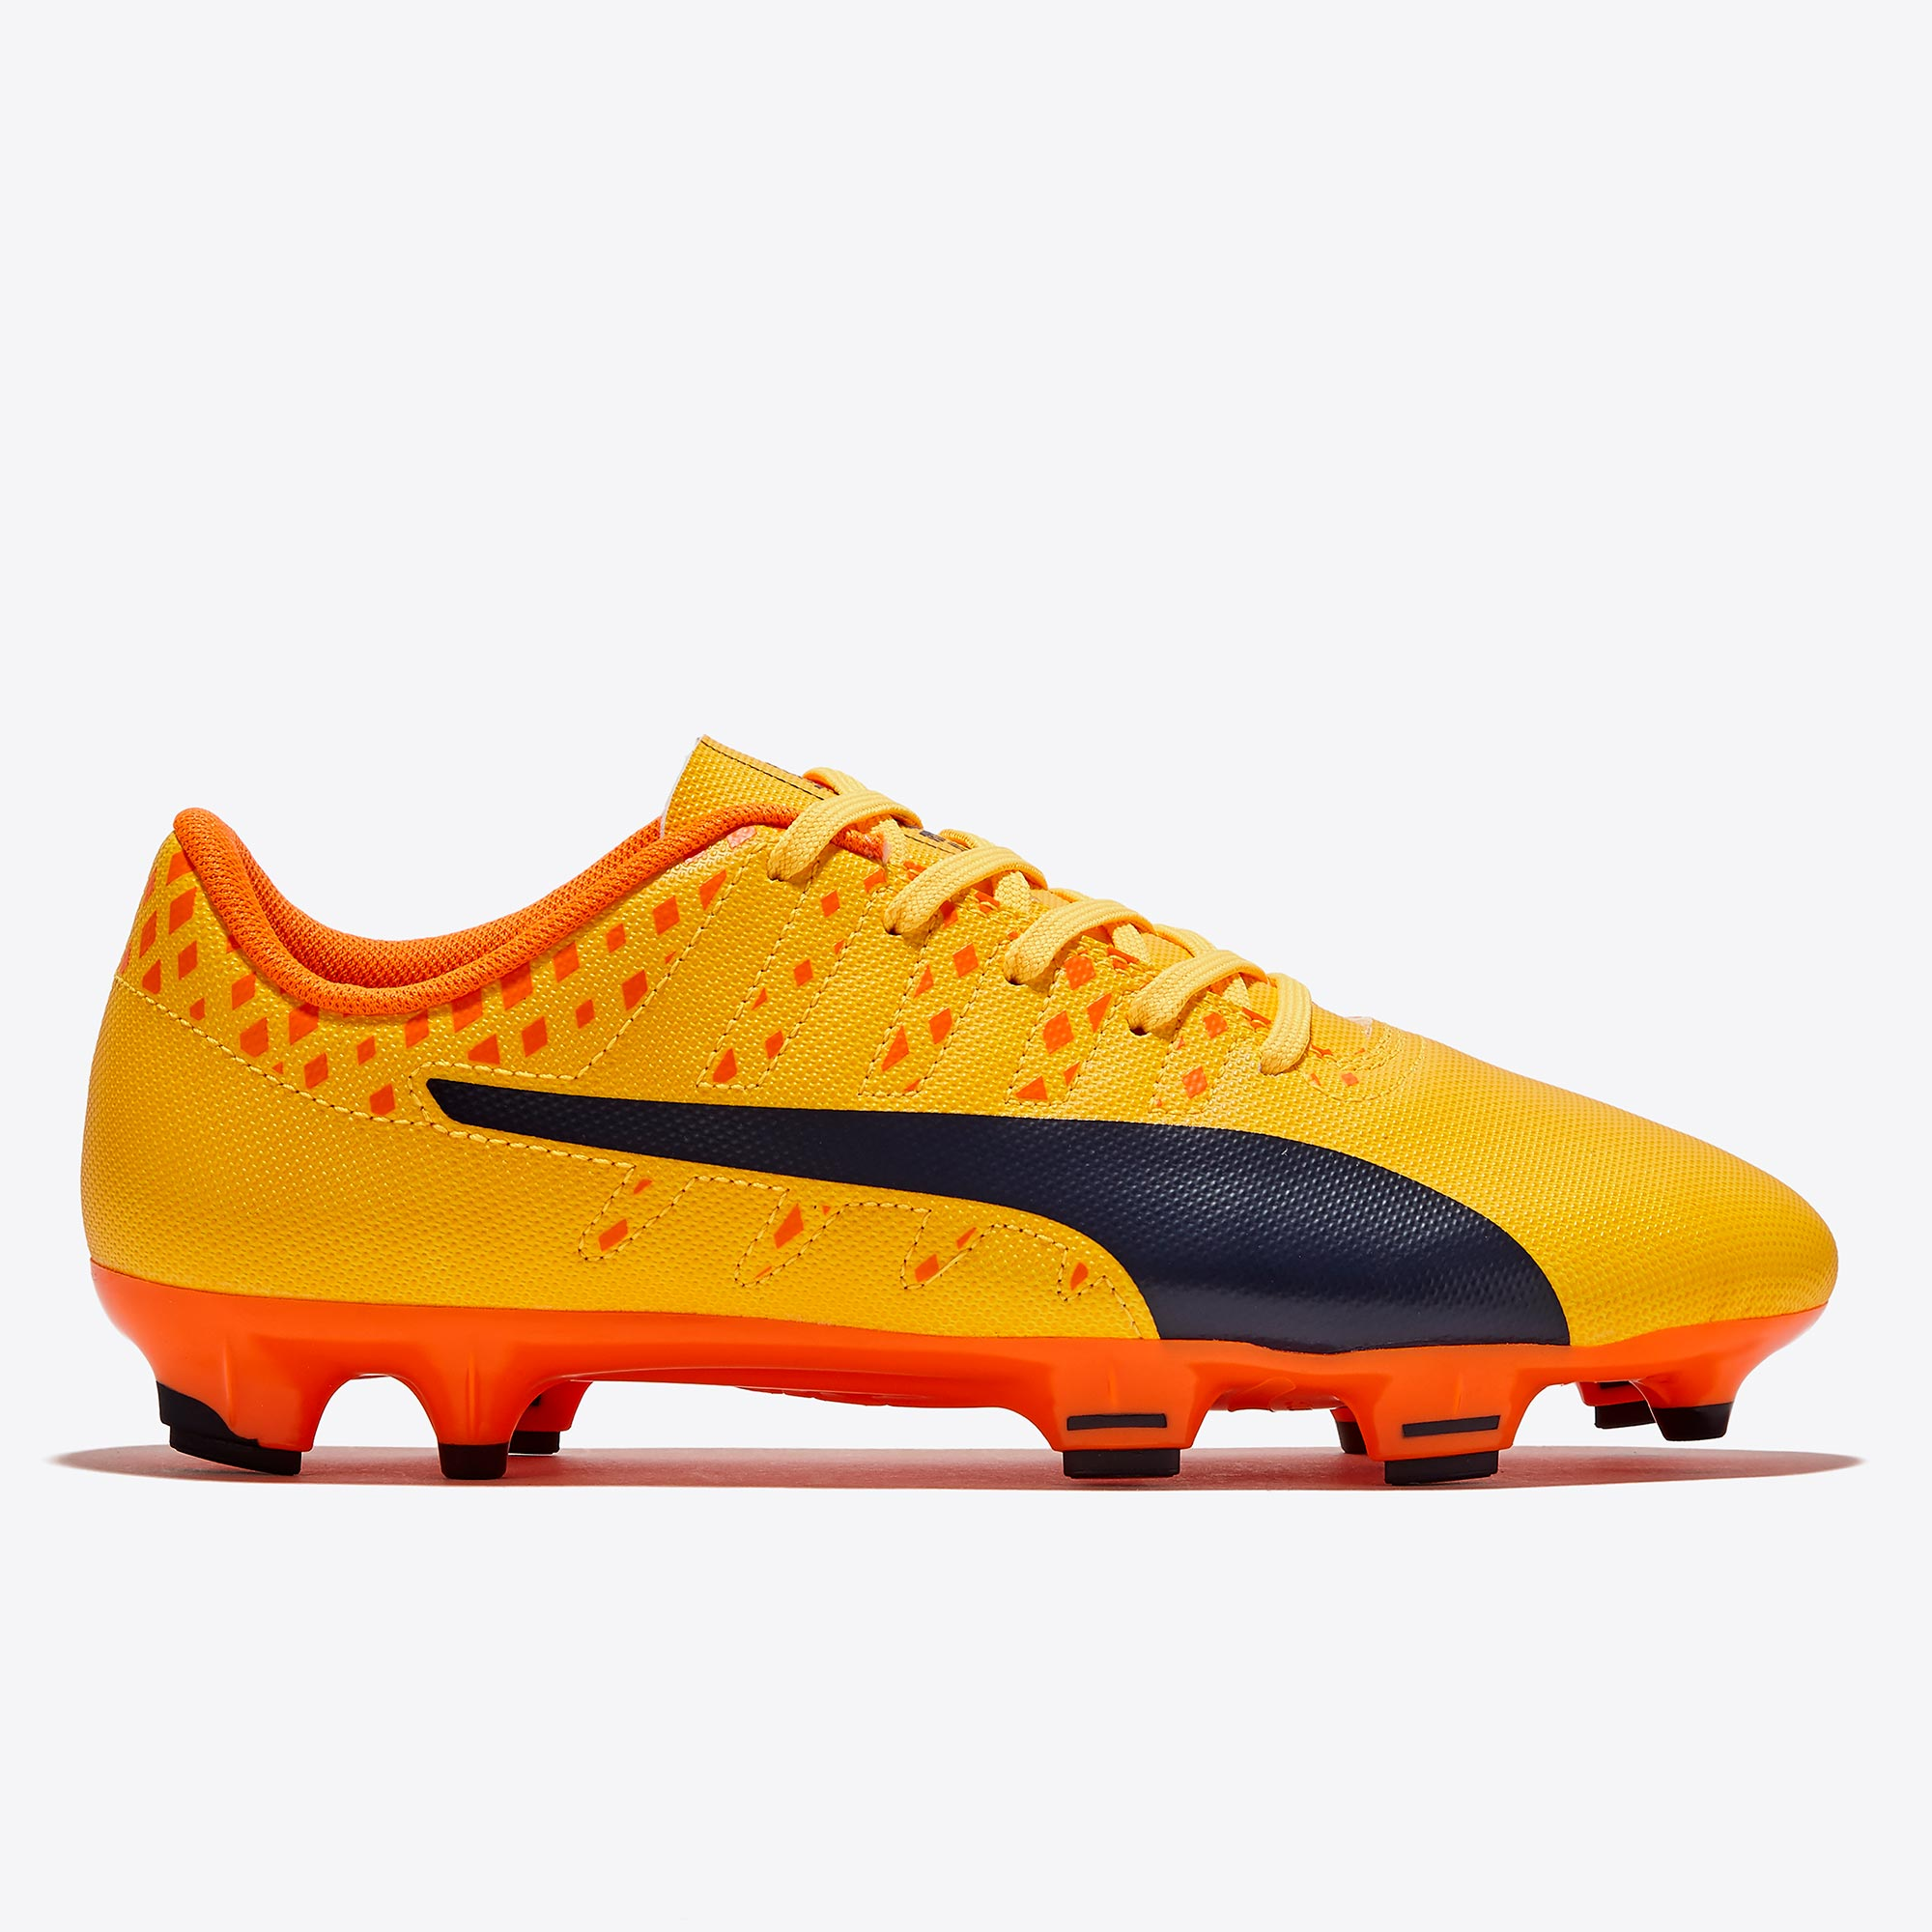 Puma evoPOWER Vigor 4 FG Ultra Yellow/Peacoa